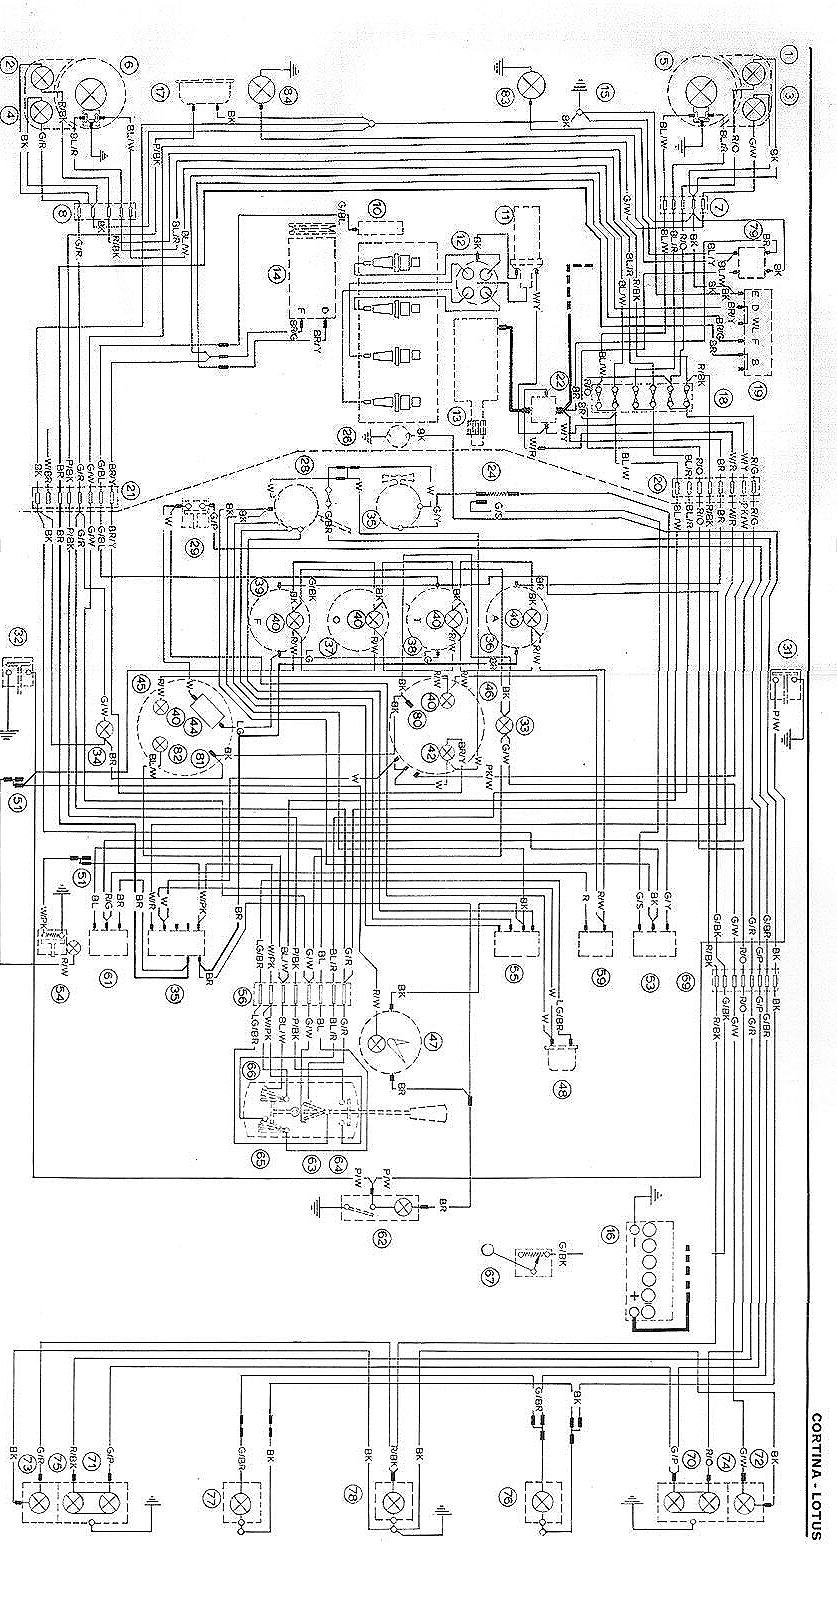 hight resolution of mk2 wiring diagram wiring diagram info wiring diagram jaguar mk2